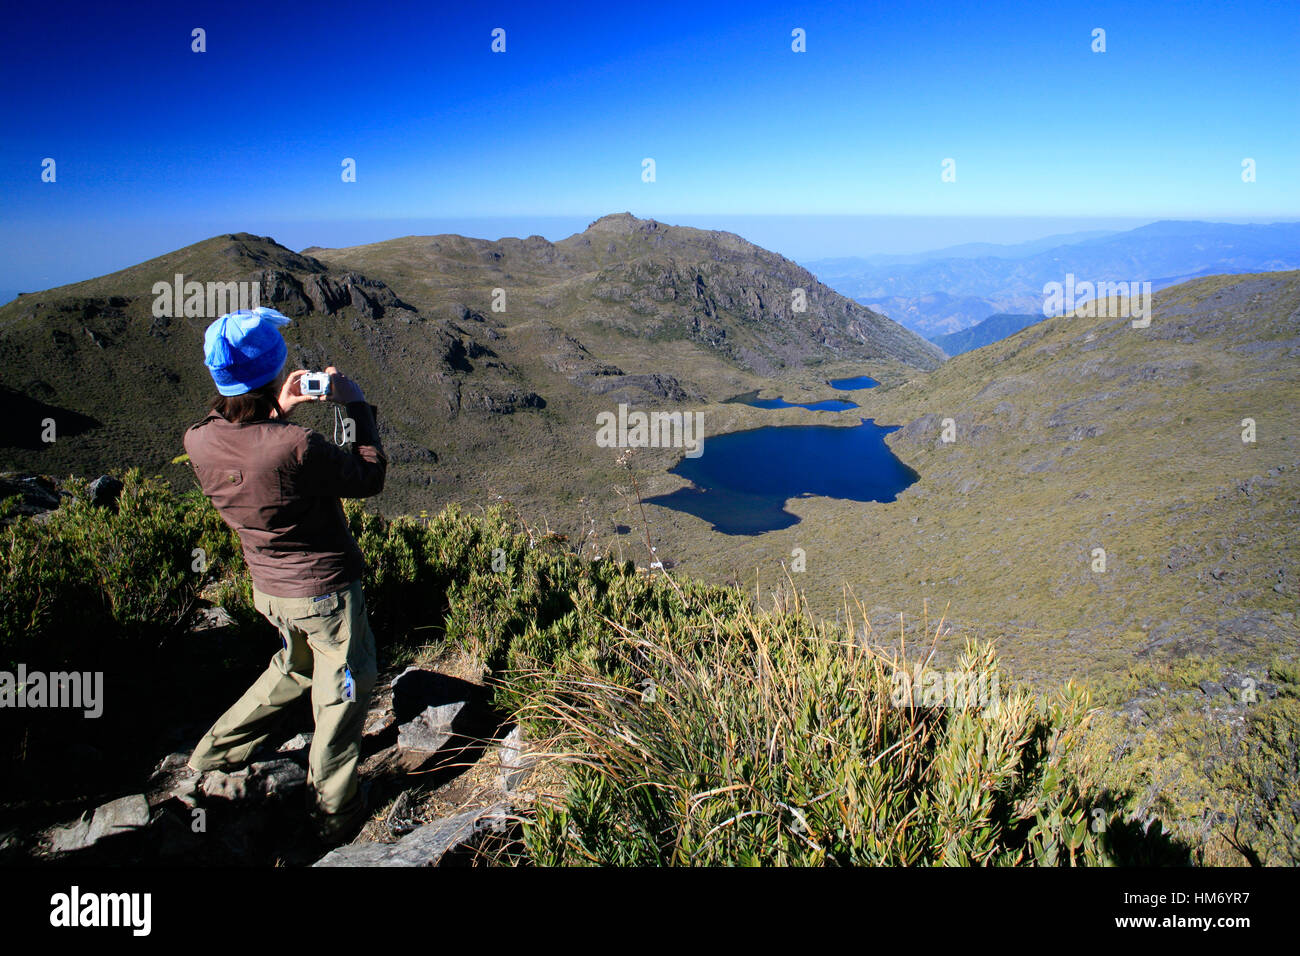 Tourist looking at Lake Chirripo from the summit of Mount Chirripo, Costa Rica's highest mountain (3820m). Chirripo - Stock Image